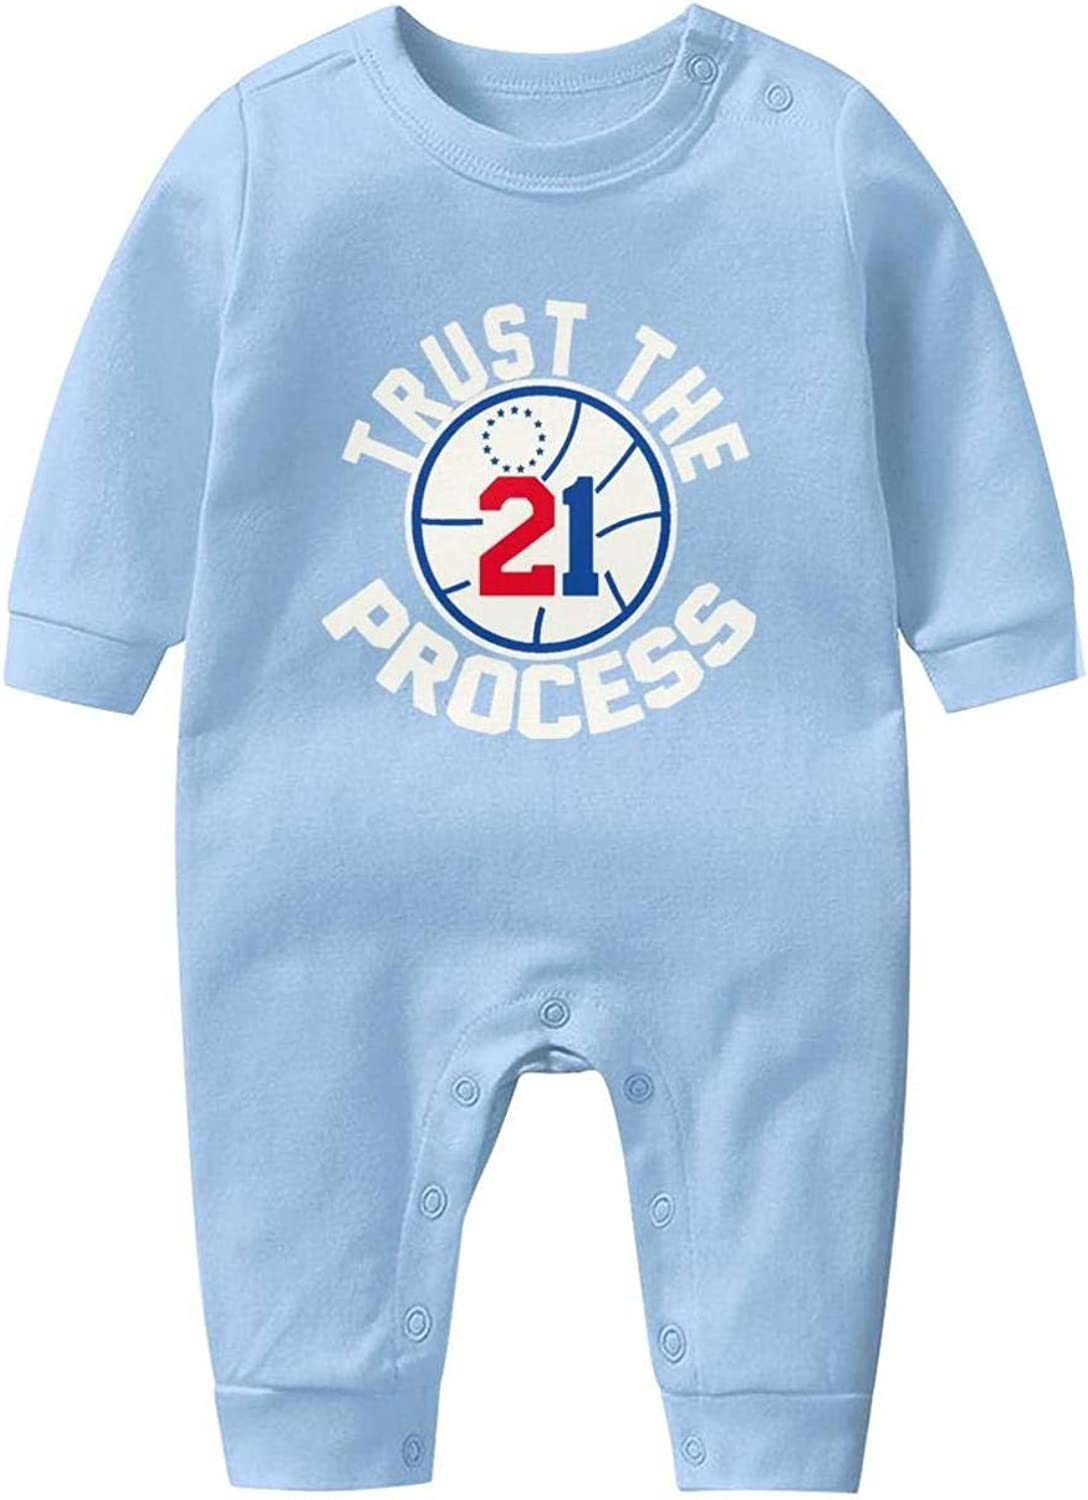 Baby Layette Jumpsuit Baby Onesies Baby Girls Boys Kids One-Piece Footie